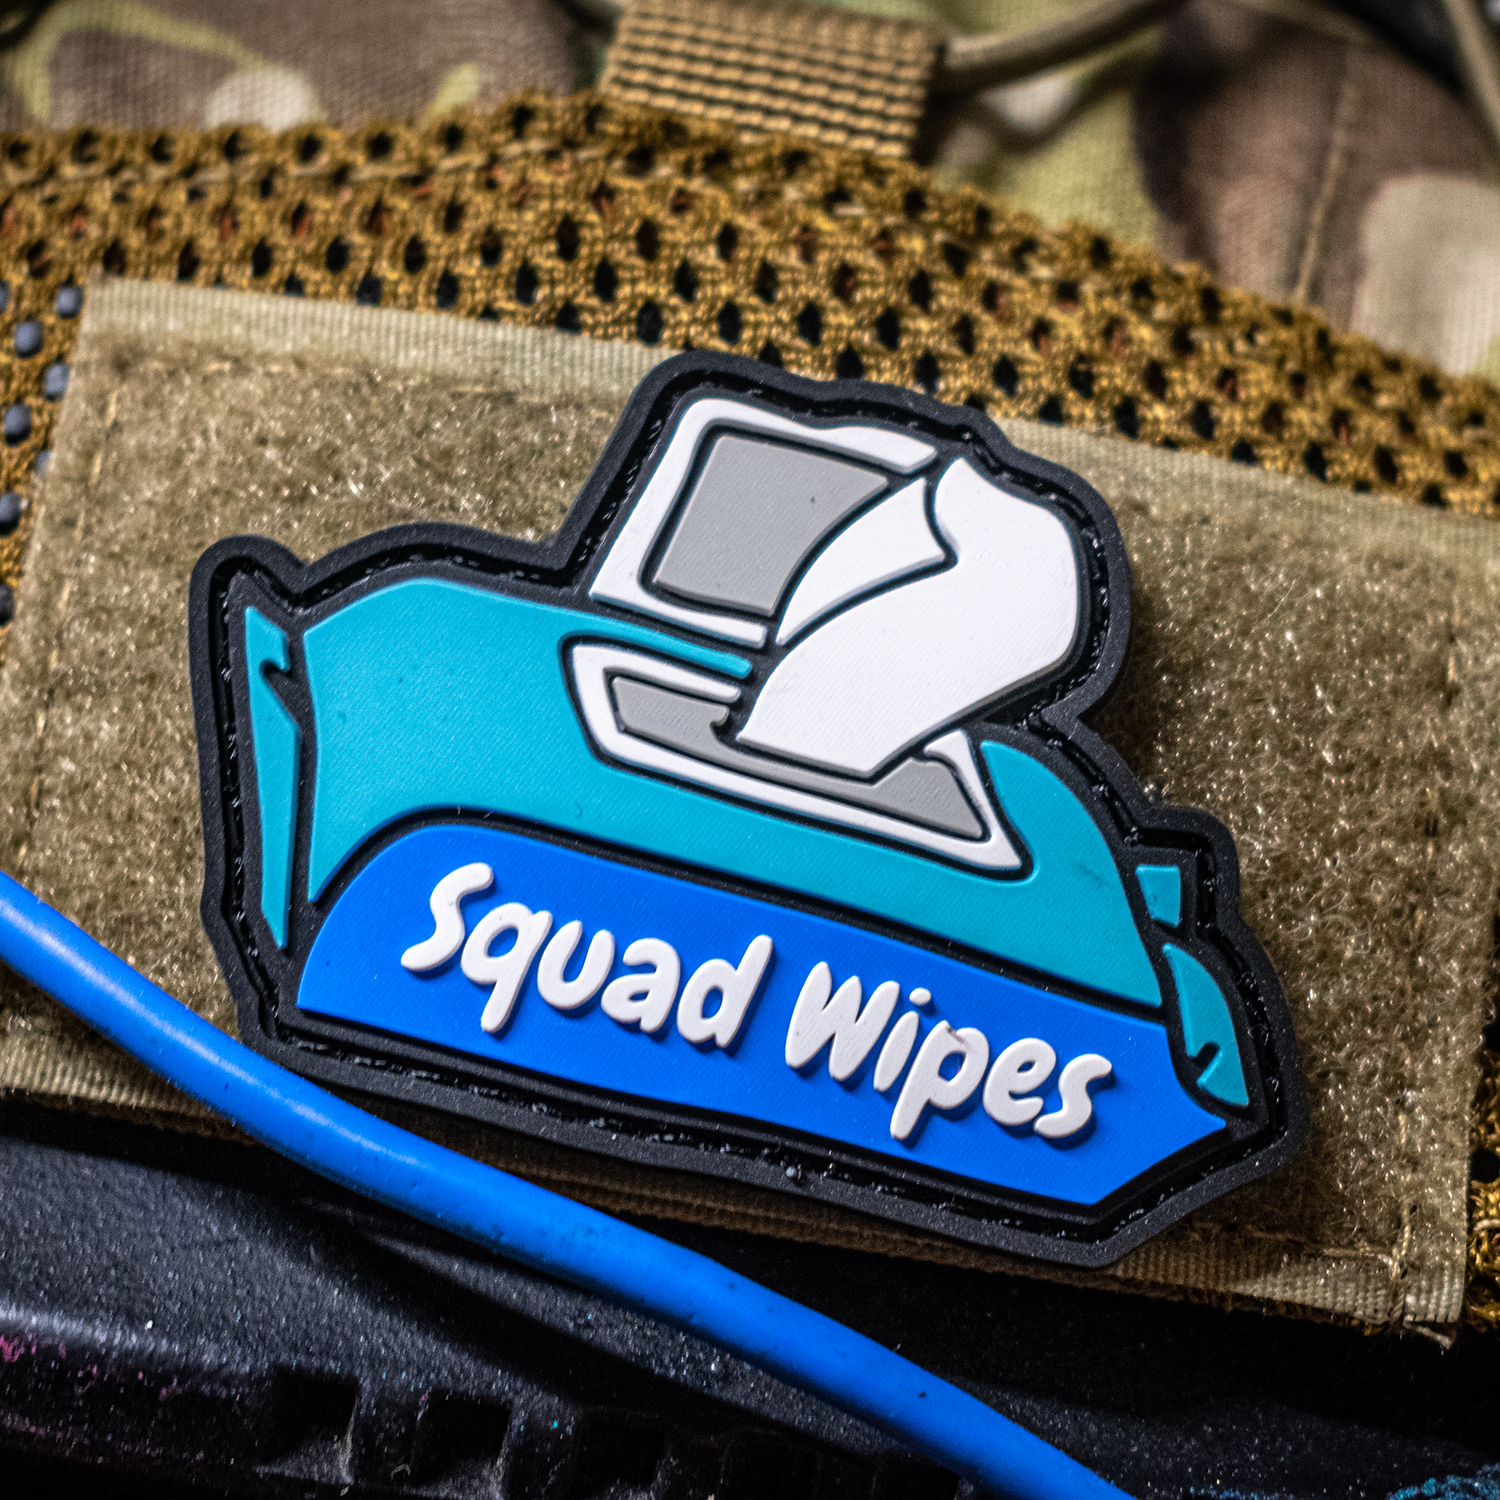 Squad Wipes